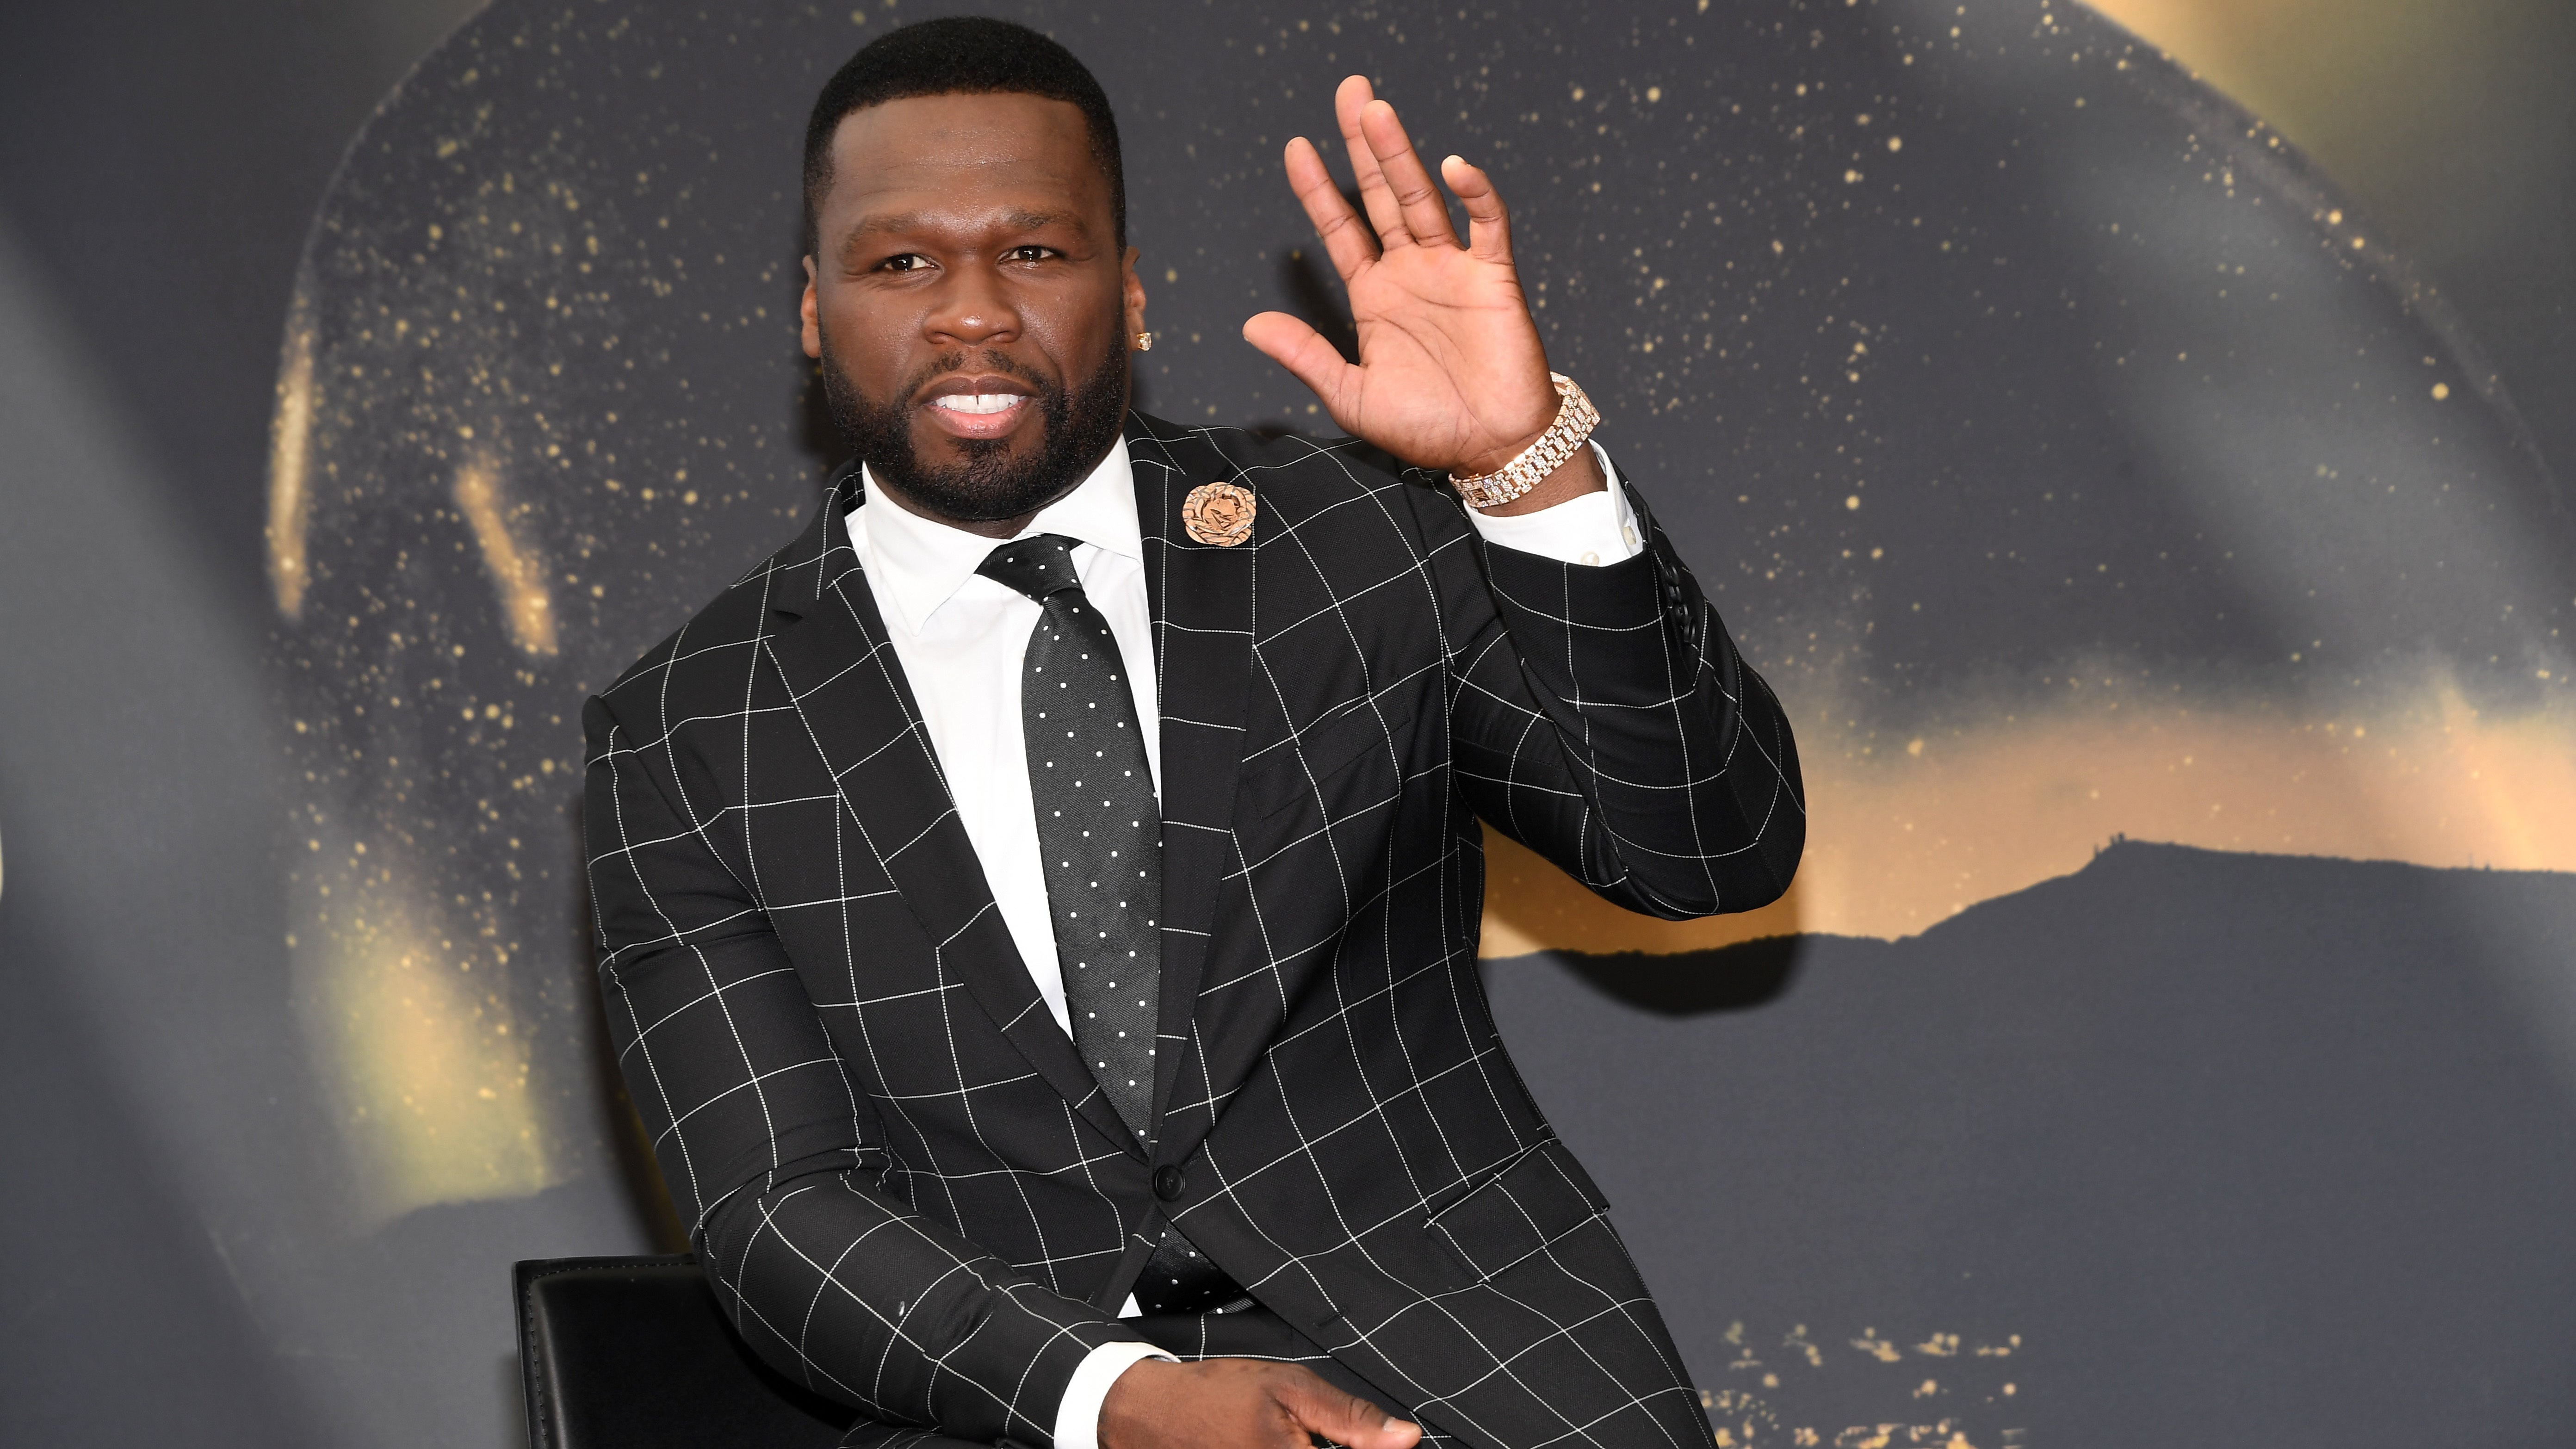 50 Cent Forgets He Accepted Bitcoin For Album, Finds $9.5 Million Pile Of Bitcoin